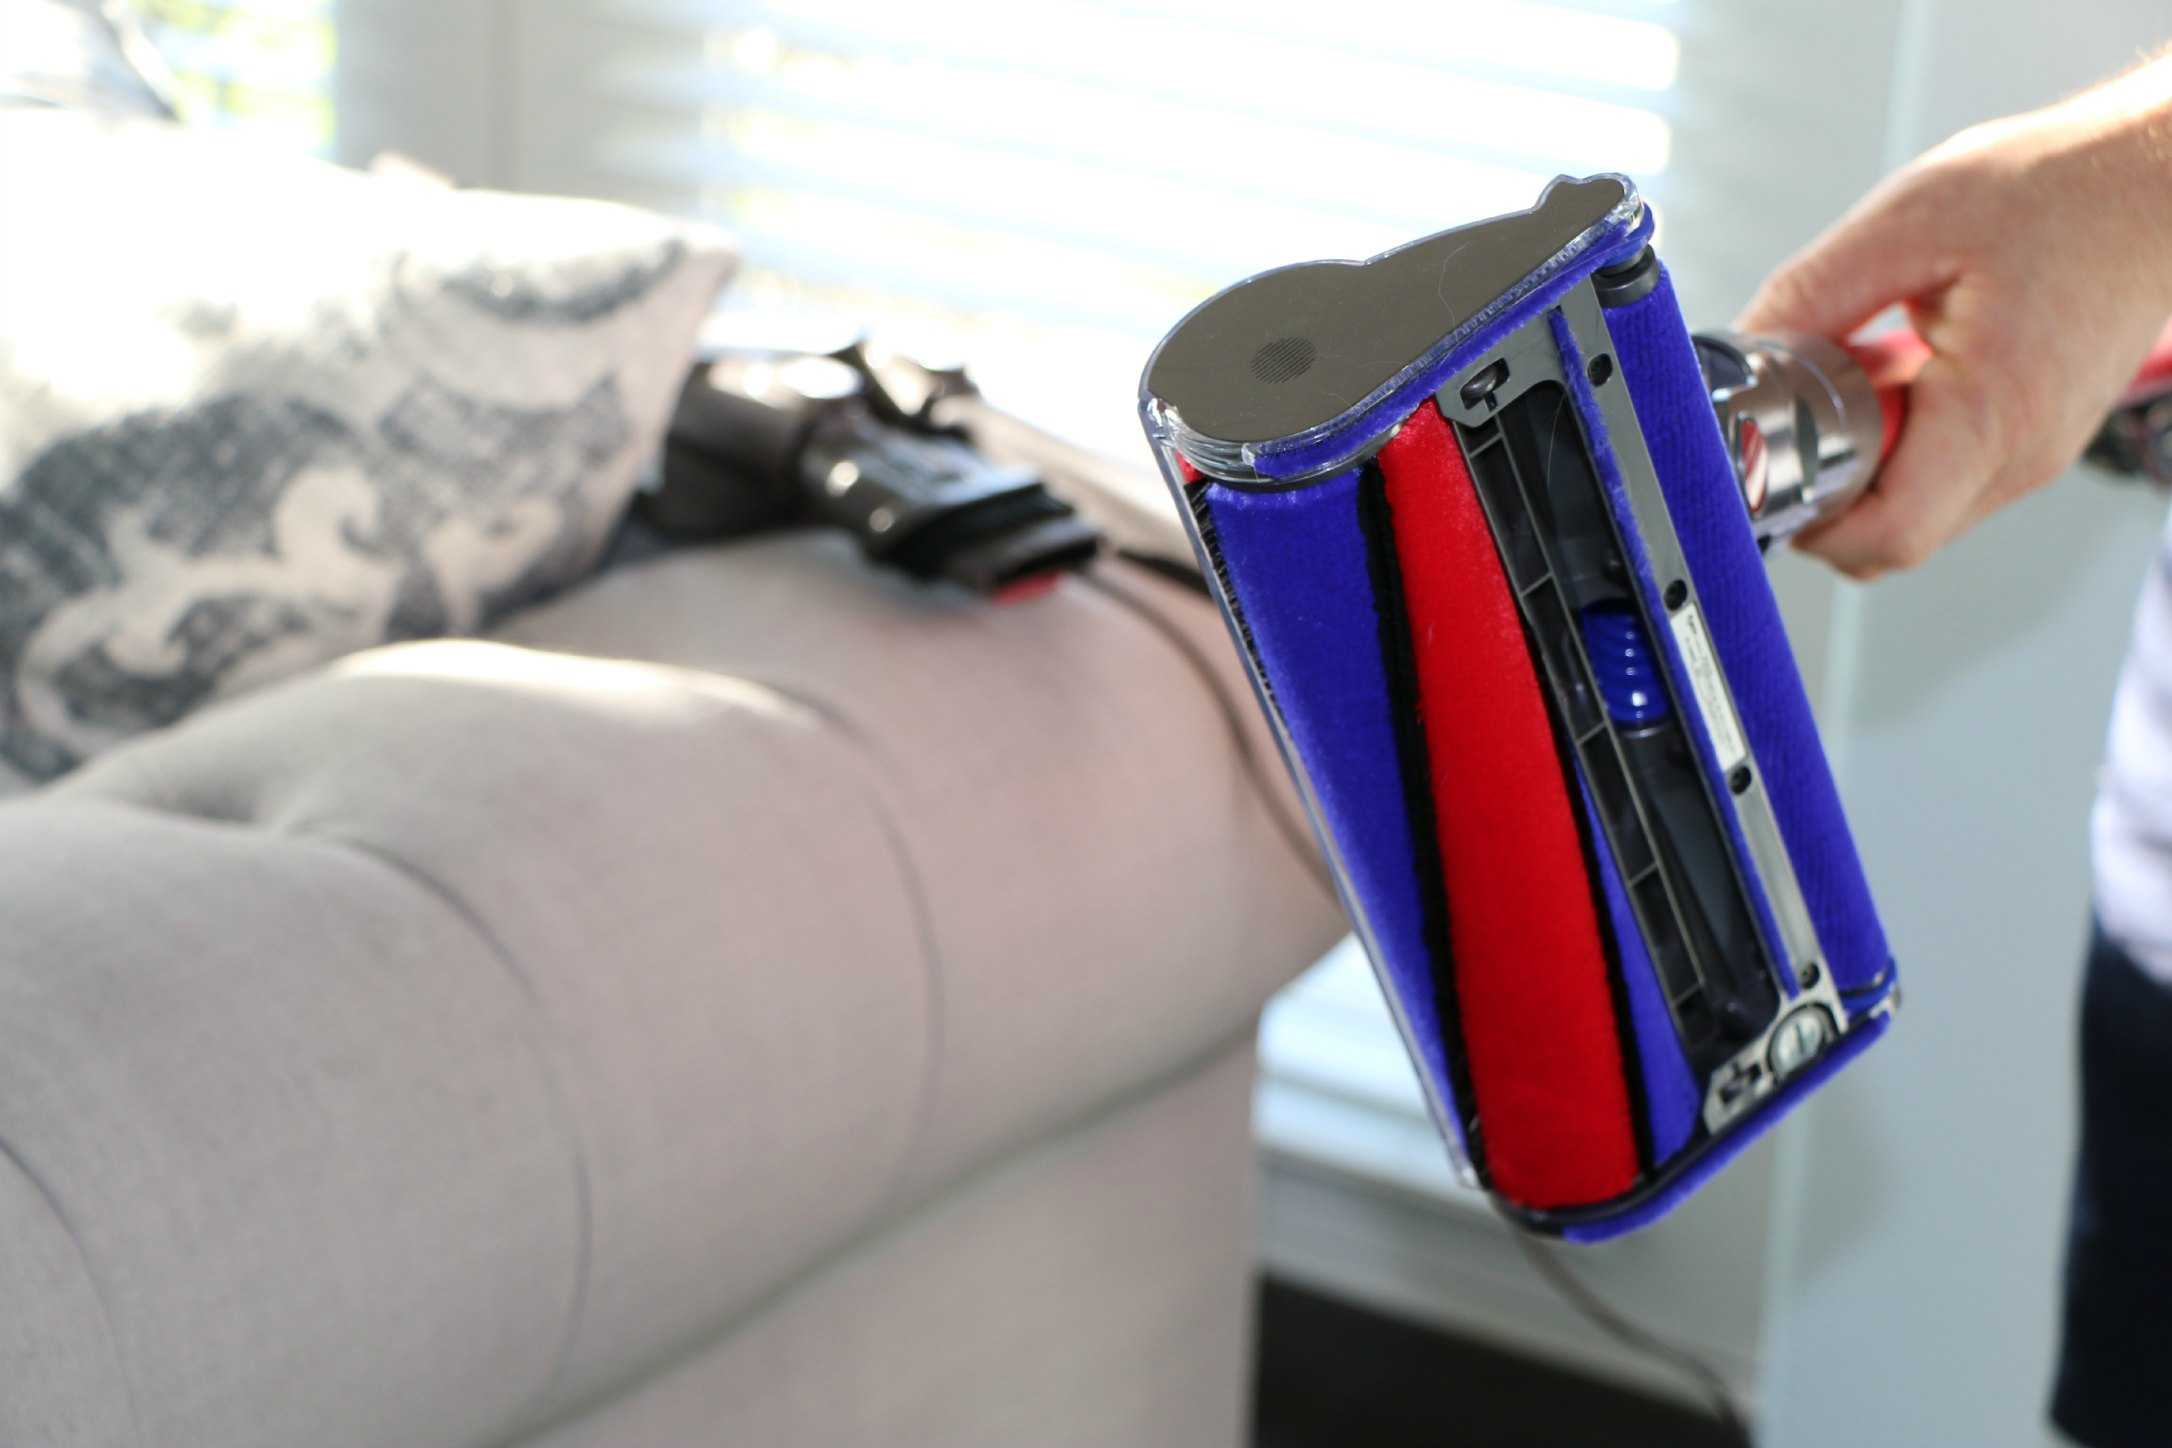 review of new dyson stick vacuum